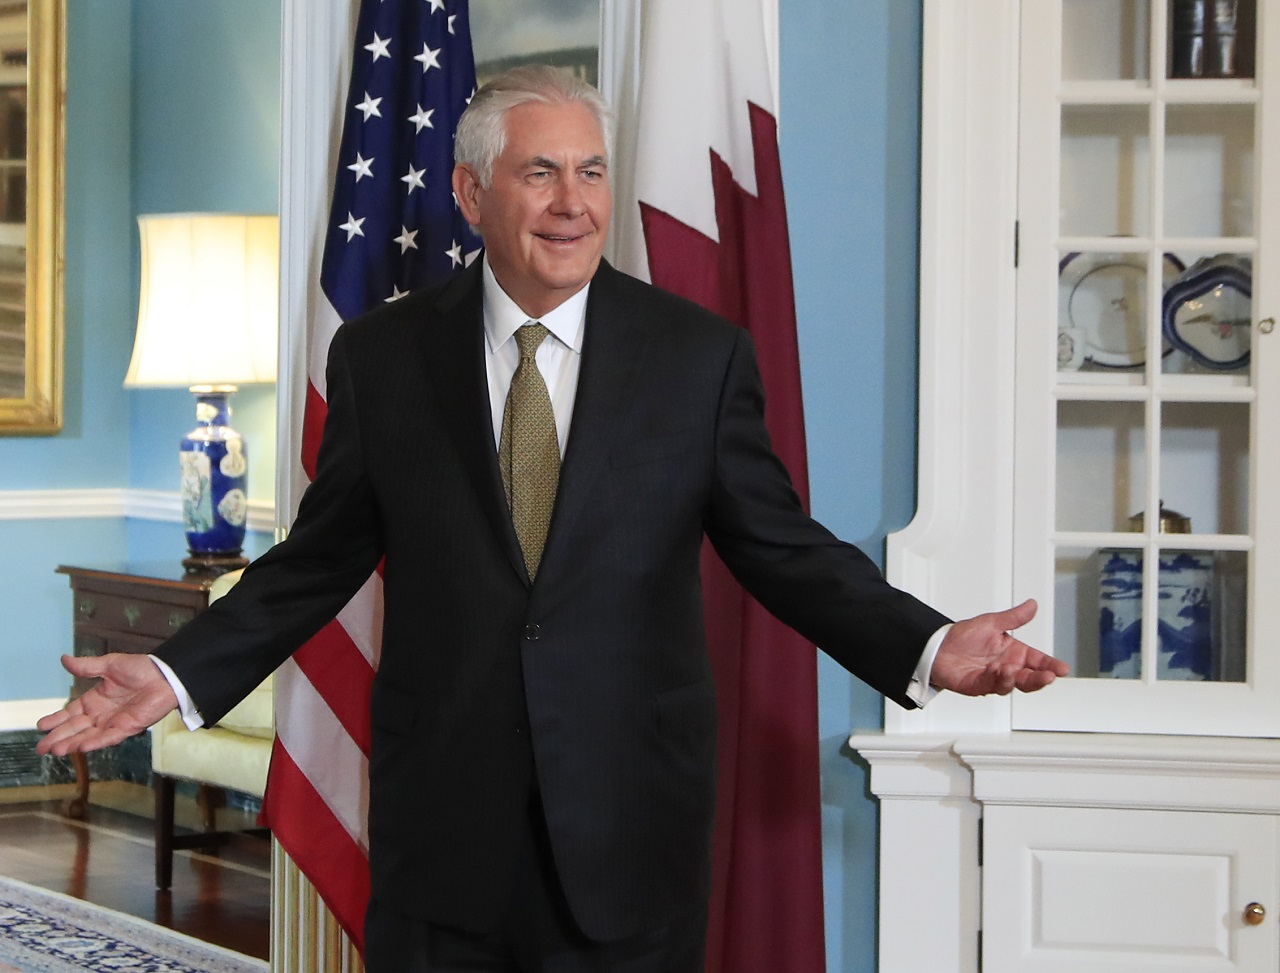 Secretary of State Rex Tillerson gestures as he responds to a reporter's question during a meeting with Qatar's Foreign Minister Sheikh Mohammed bin Abdulrahman Al Thani at the State Department in Washington, Wednesday, July 26, 2017.